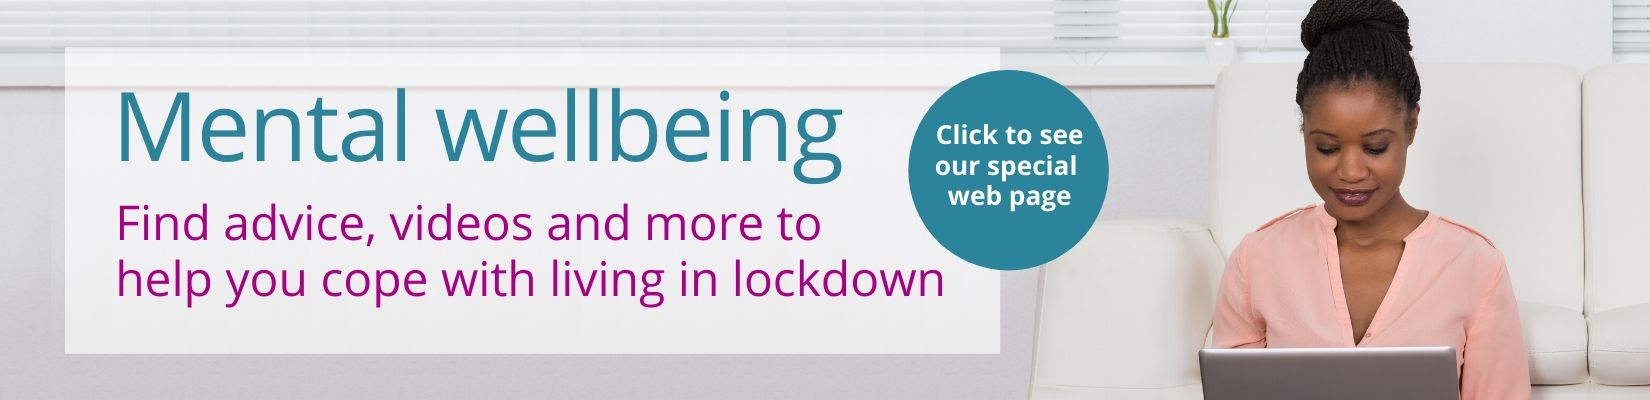 Link to mental wellbeing web page